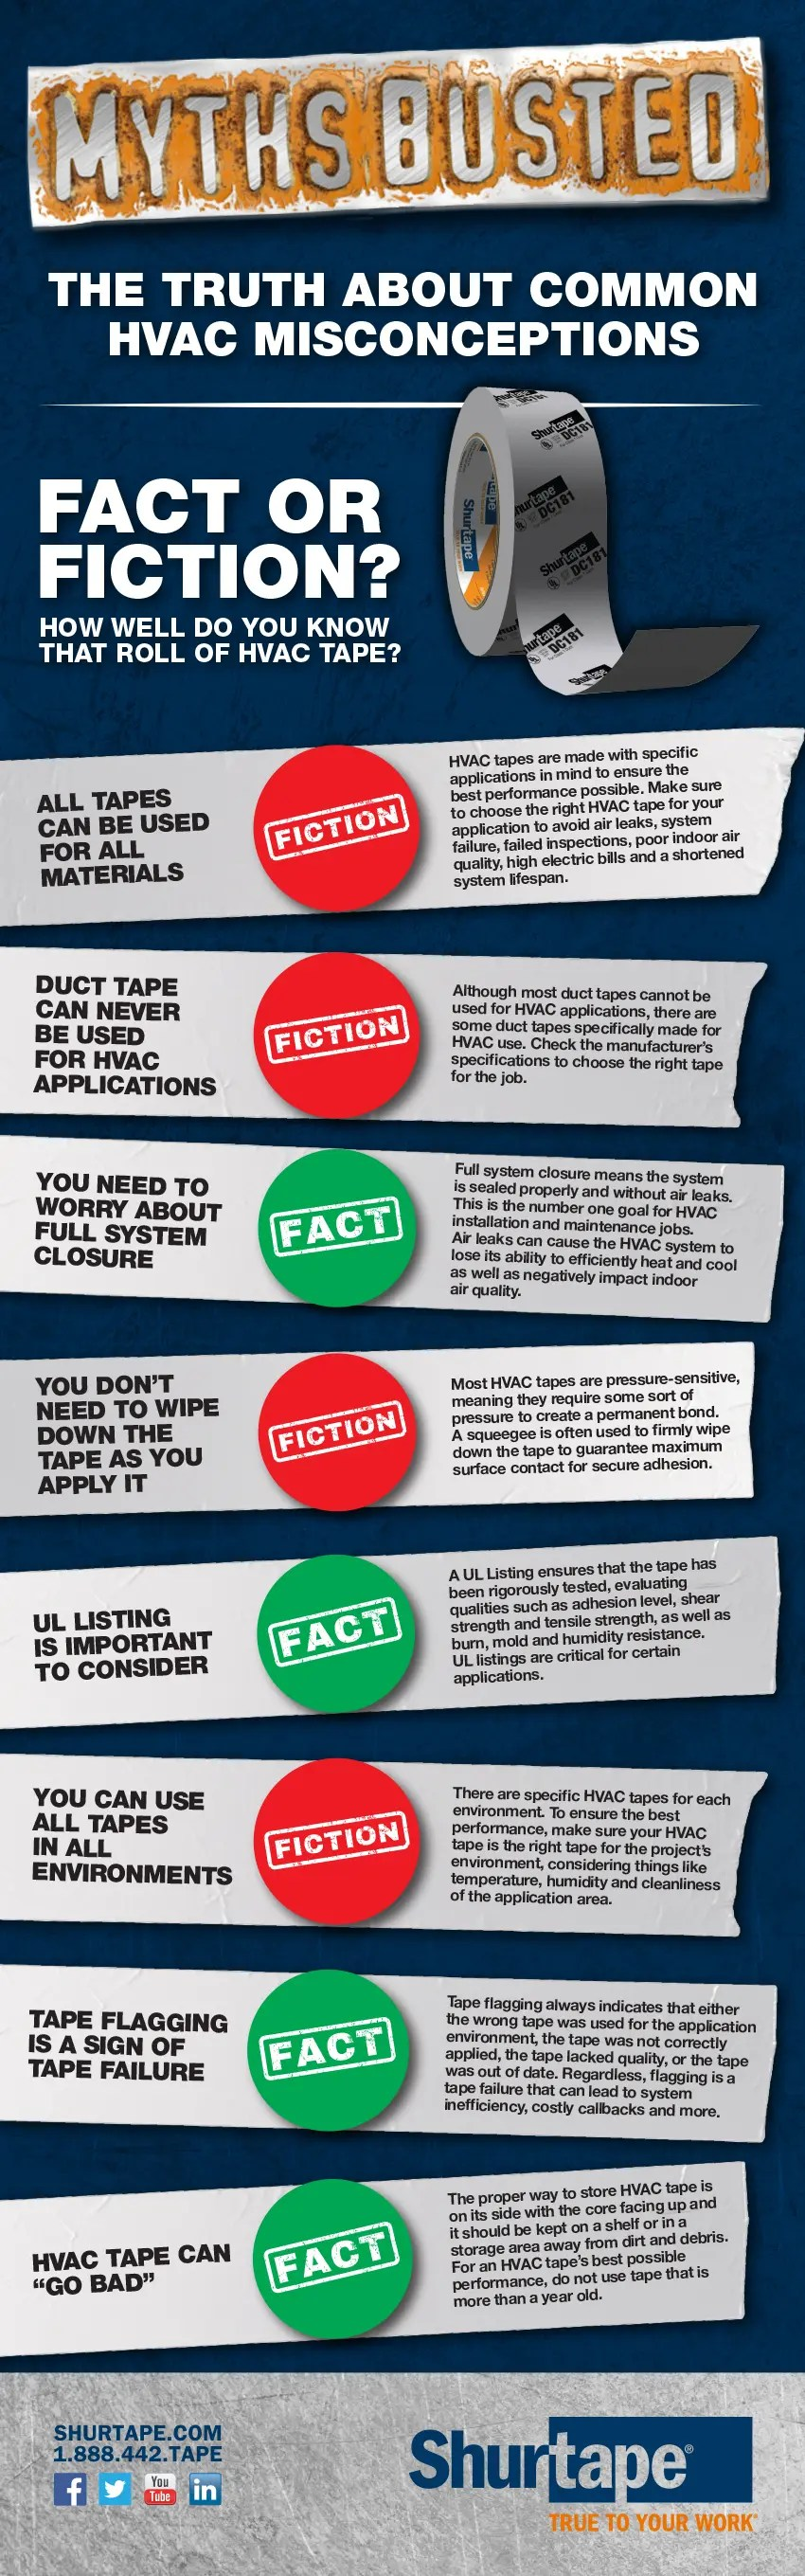 HVAC Tape Myths Busted